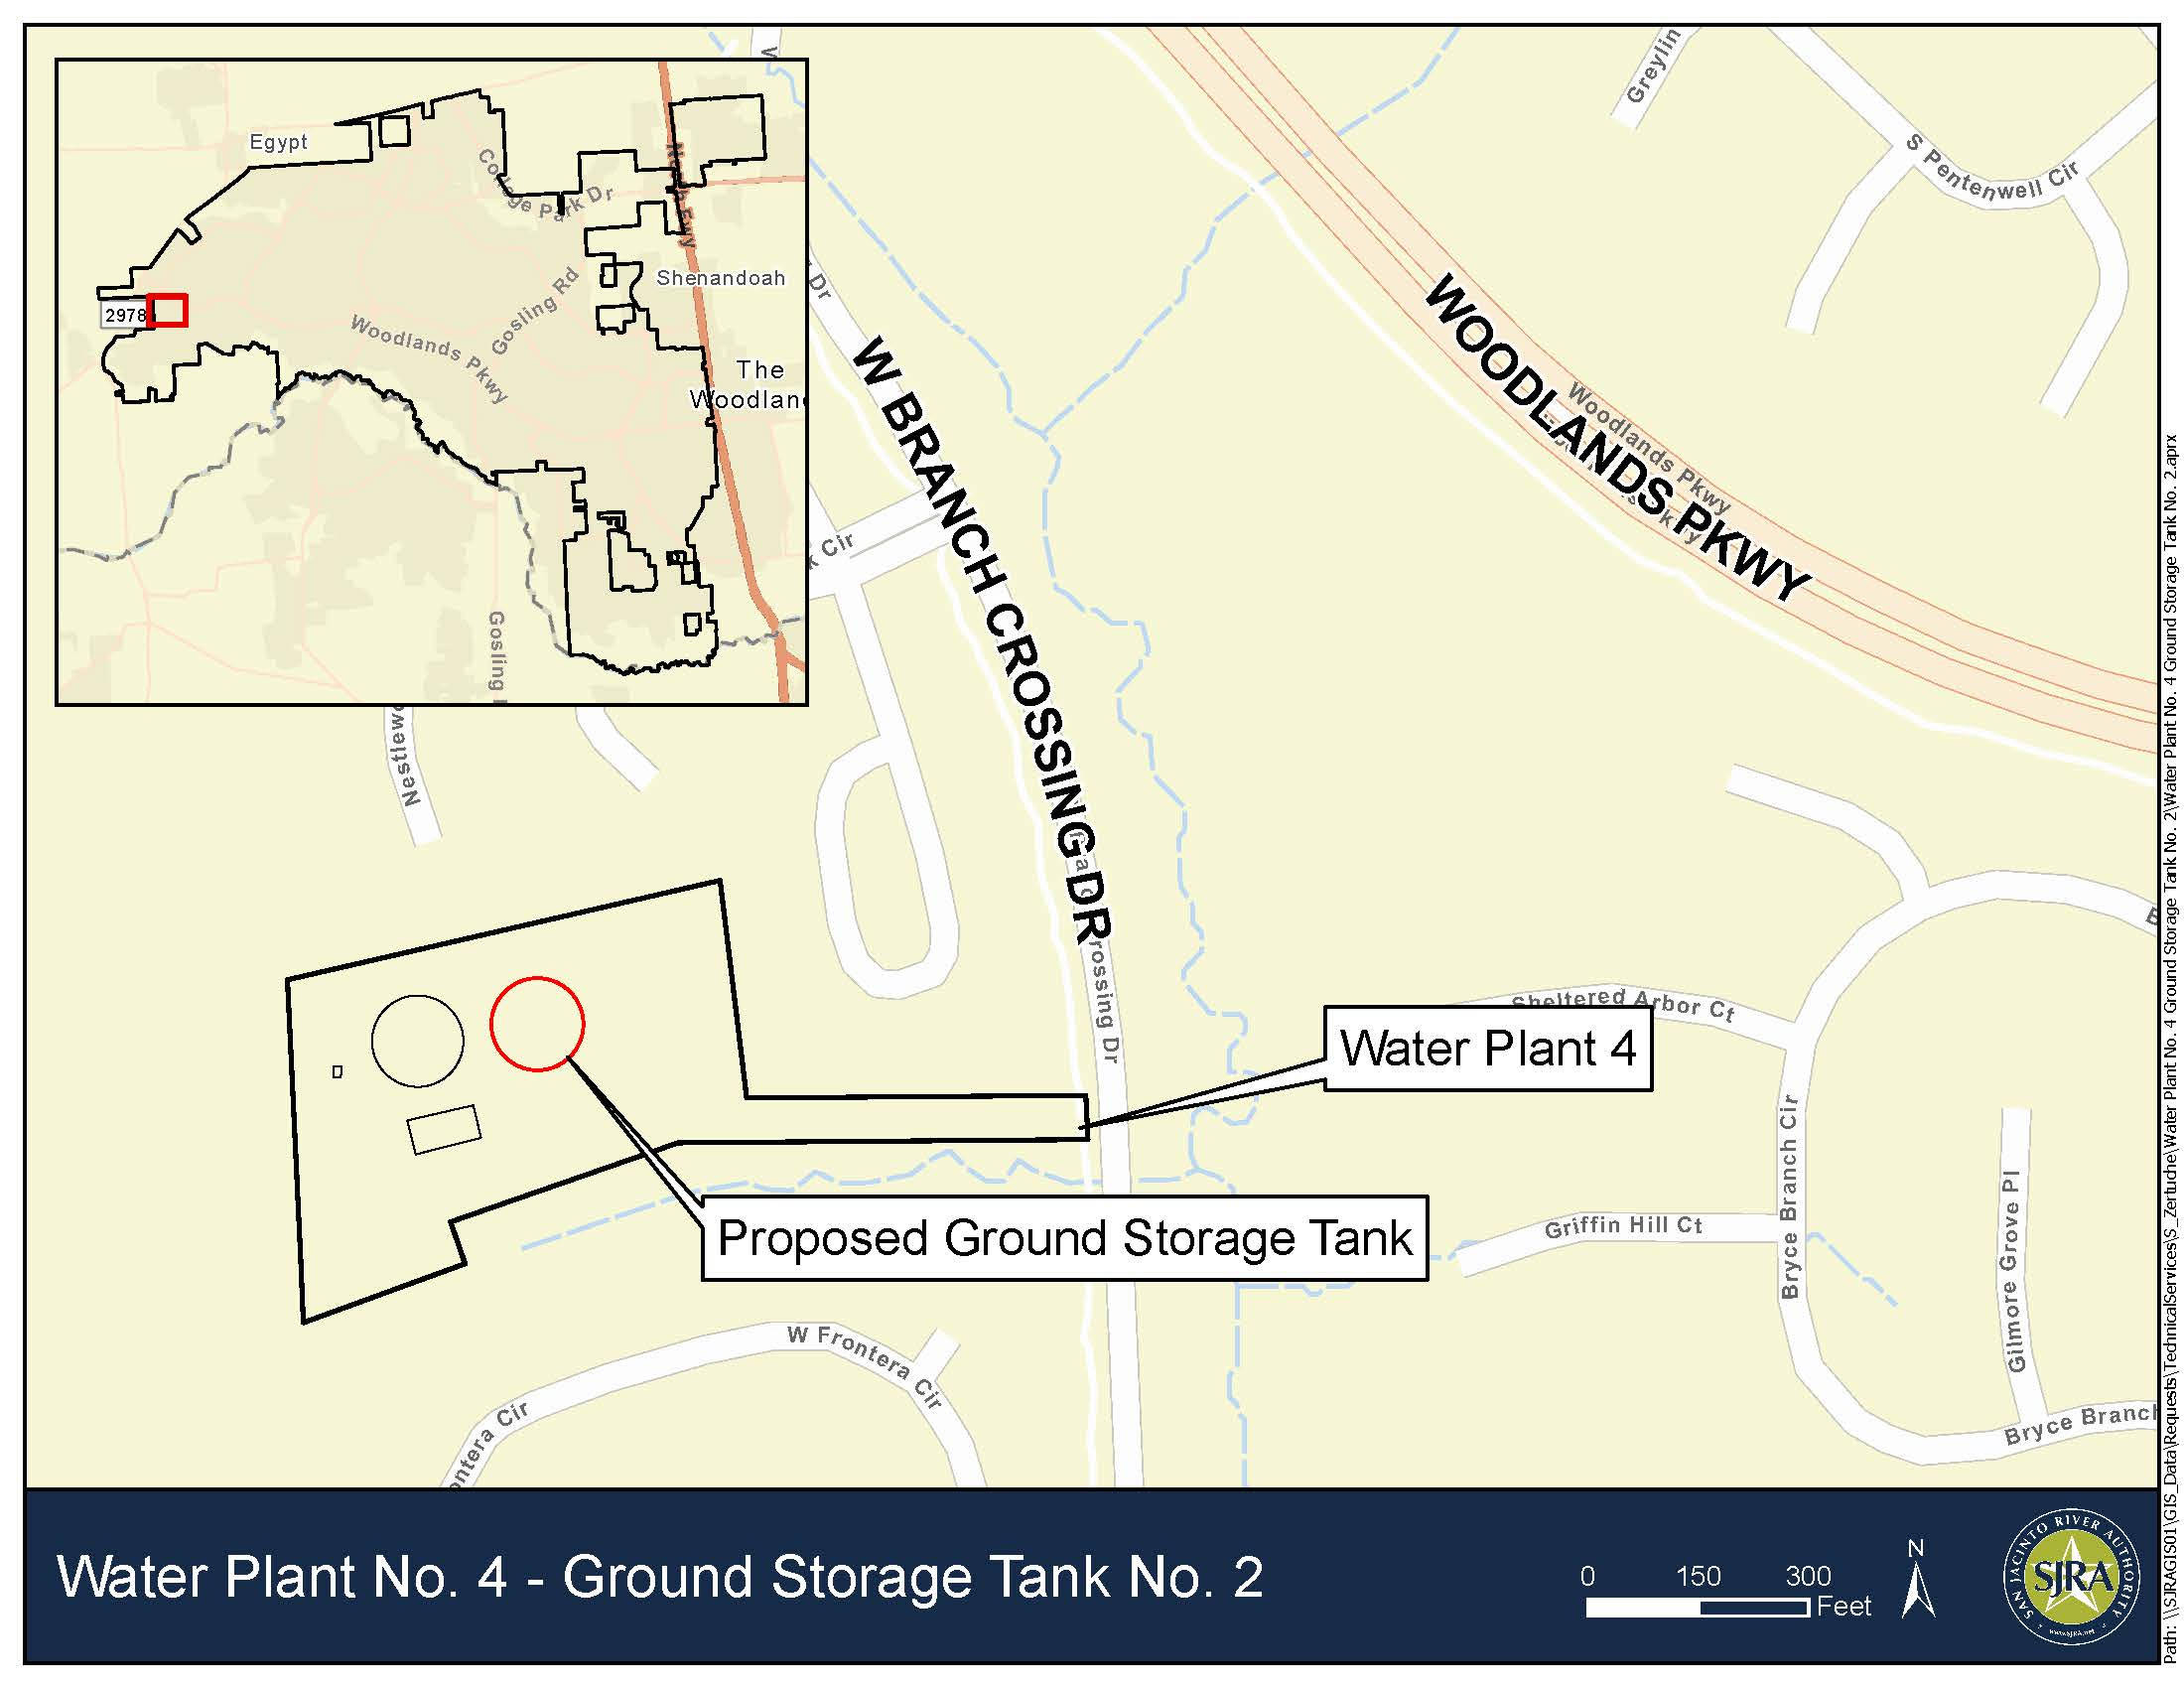 Water Plant No. 4 Ground Storage Tank No 2 - Map